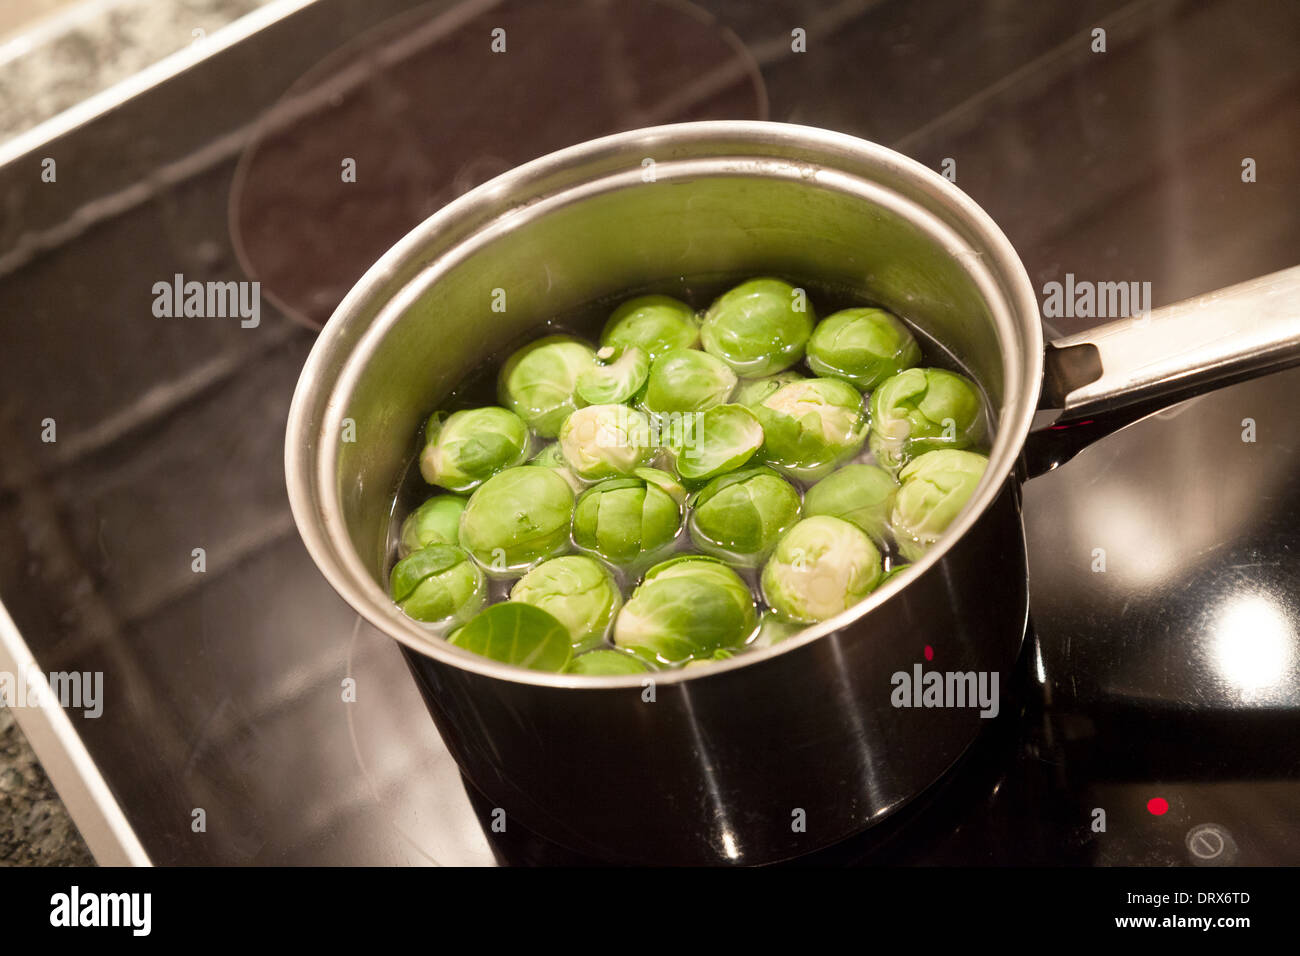 Brussel Sprouts Vegetables Cooking In A Saucepan On The